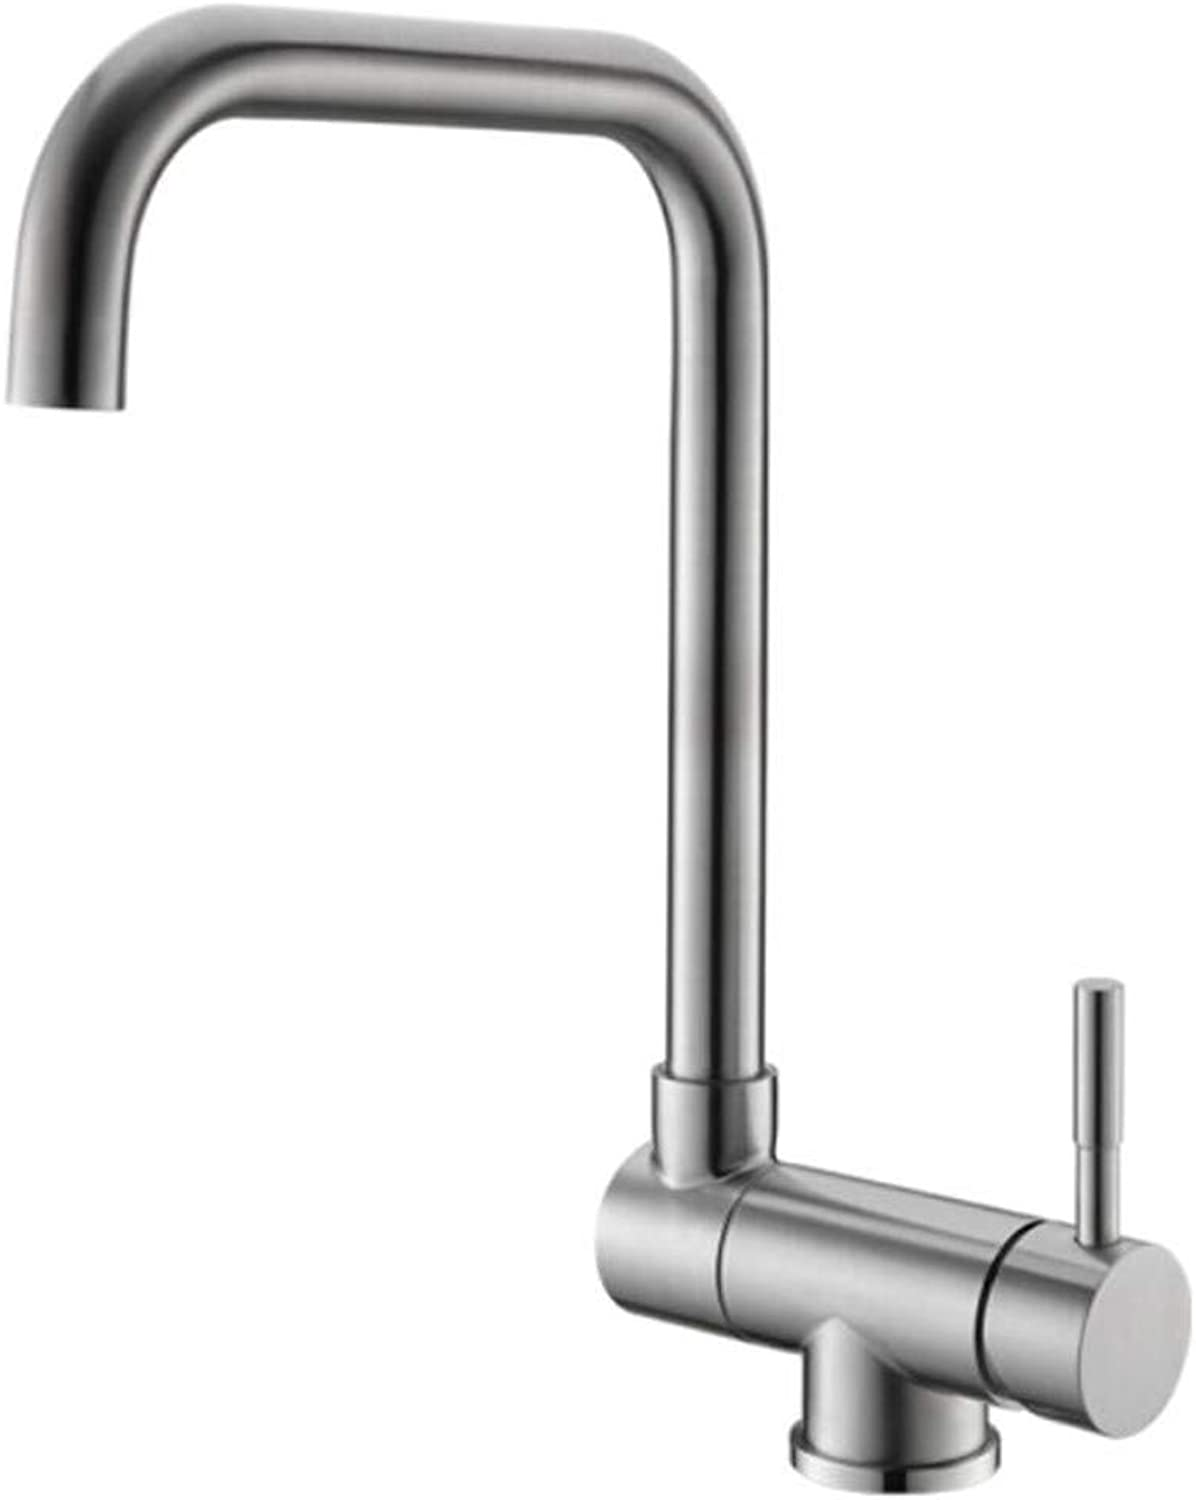 Taps Mixer?Swivel?Faucet Sink Folding Kitchen Faucet Sink Vegetable Basin Stainless Steel Wire Drawing Cold and Hot Water Faucet Can redate